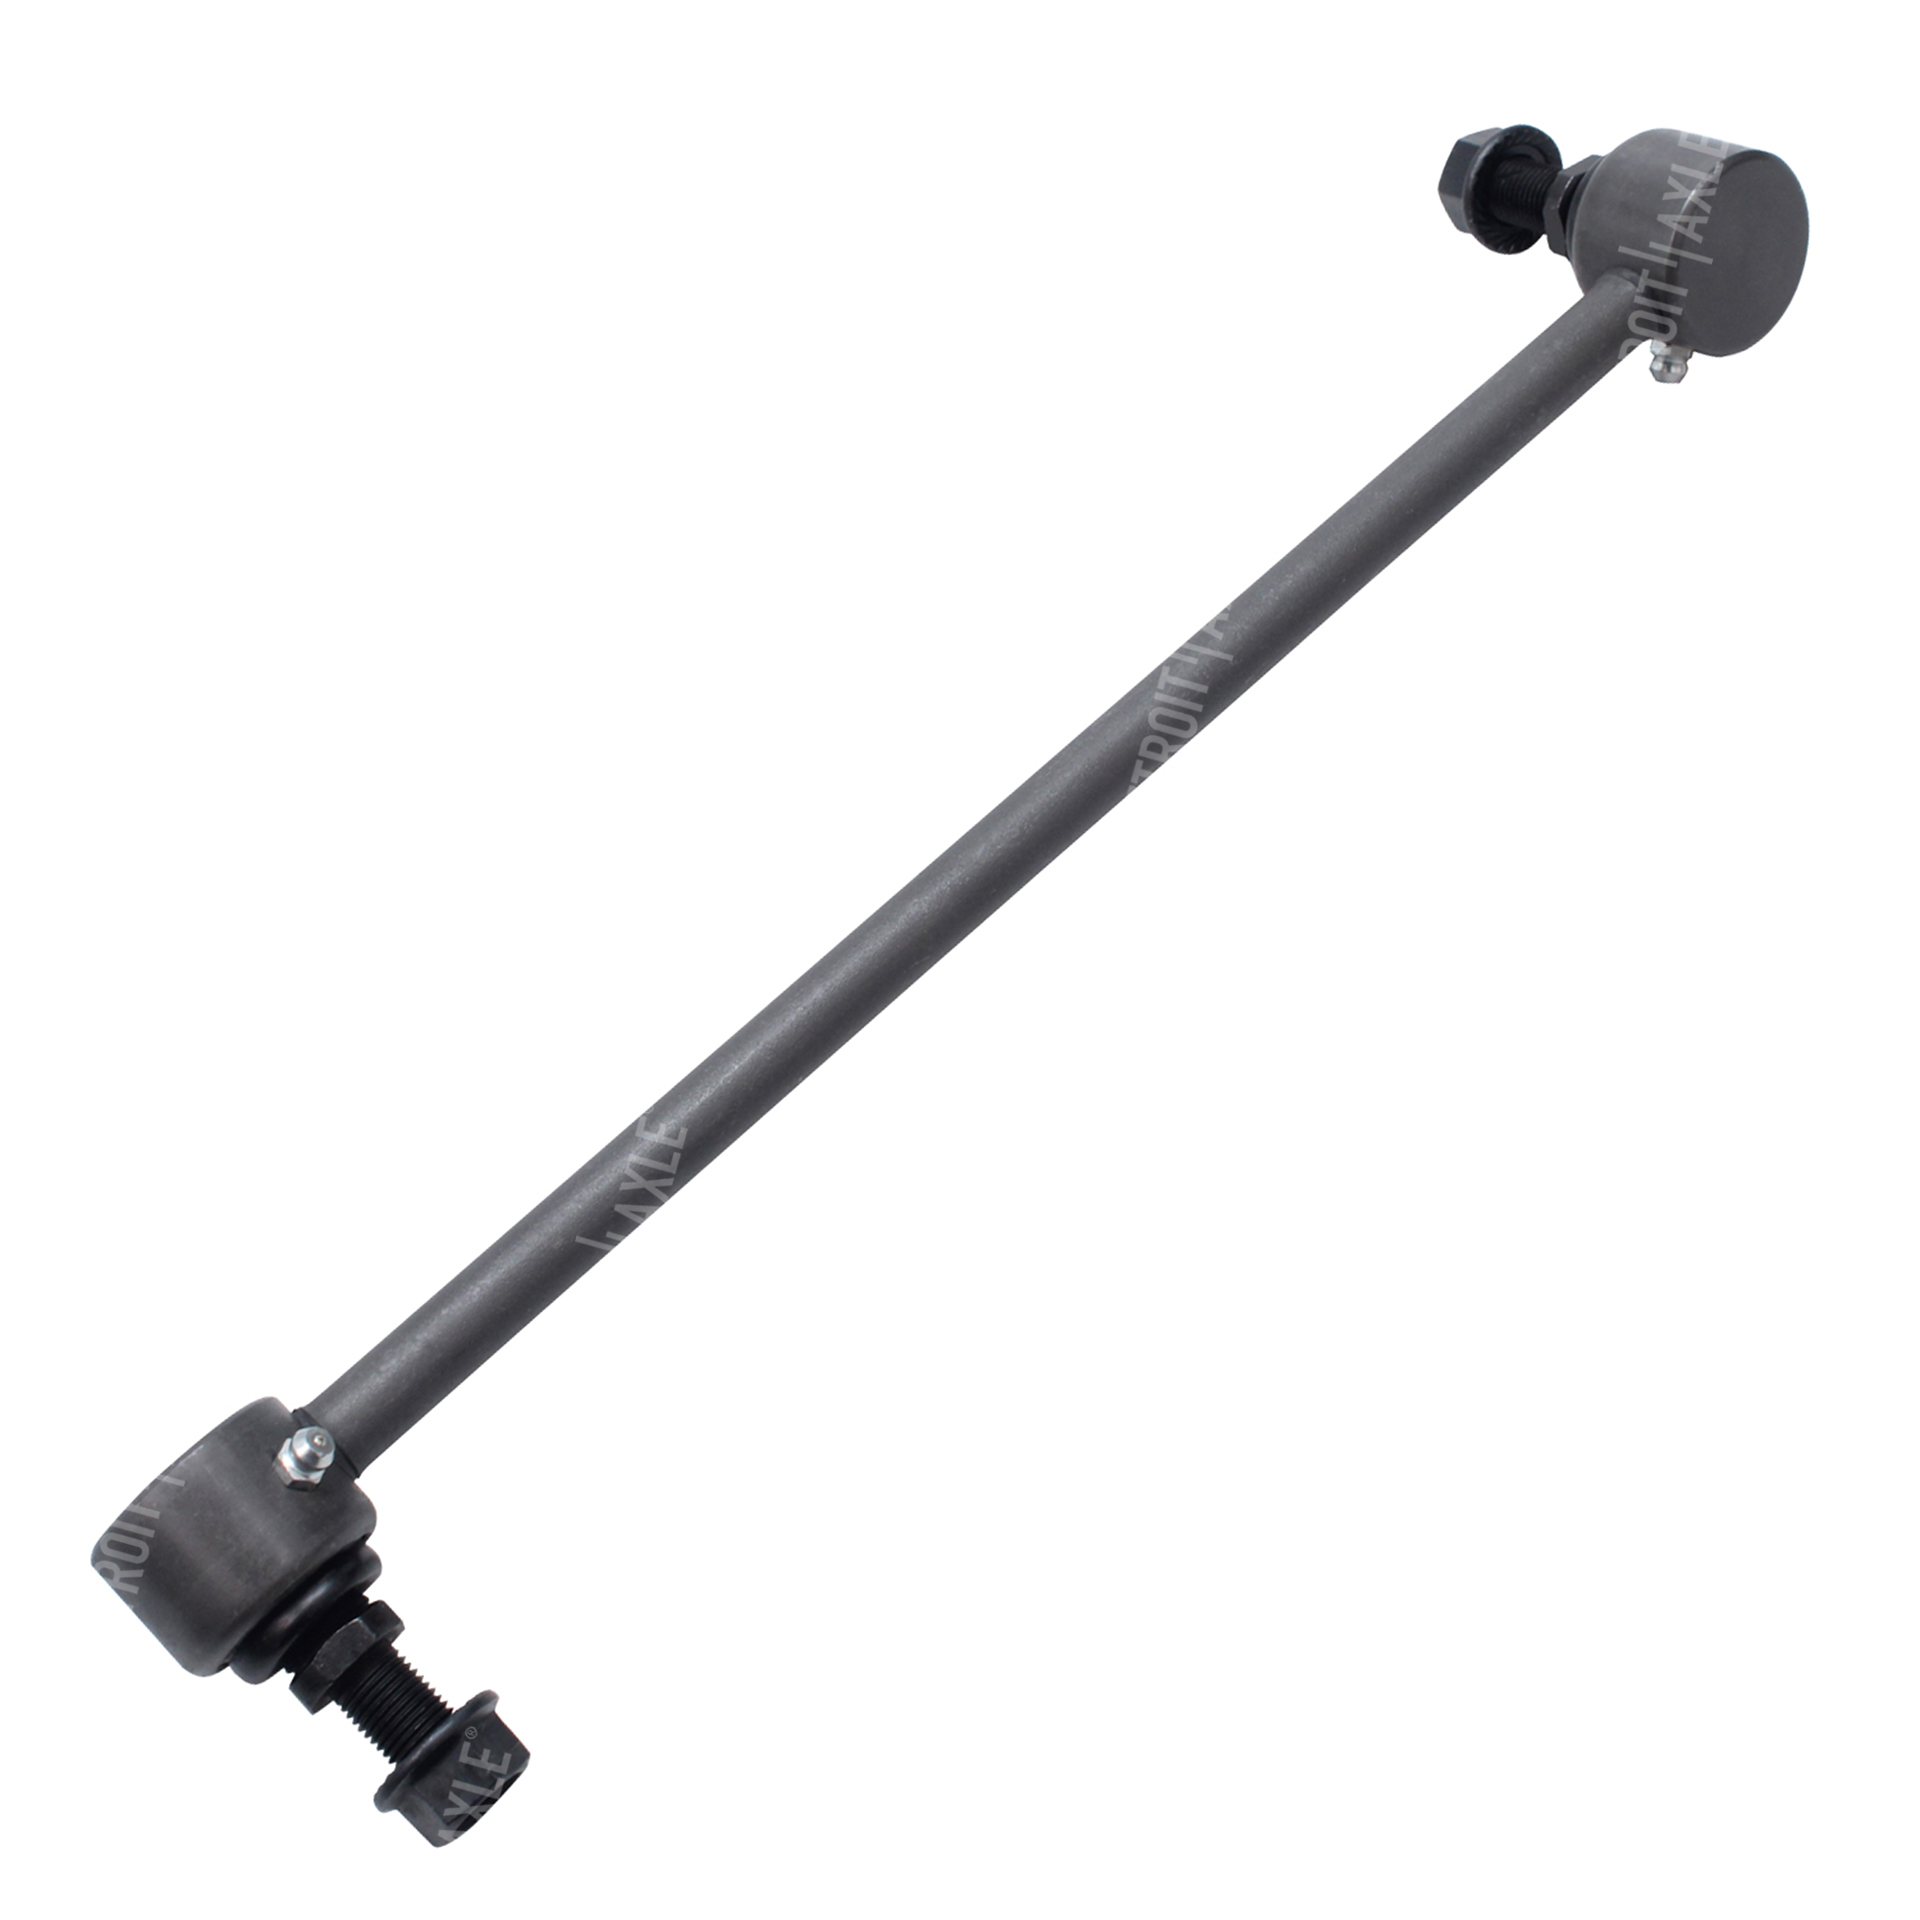 Detroit Axle - Front Right Passenger Side Sway Bar / Stablizer Link for 2011-2014 Hyundai Sonata 2.4L NON-Hybrid - NOT For Sport Sus.